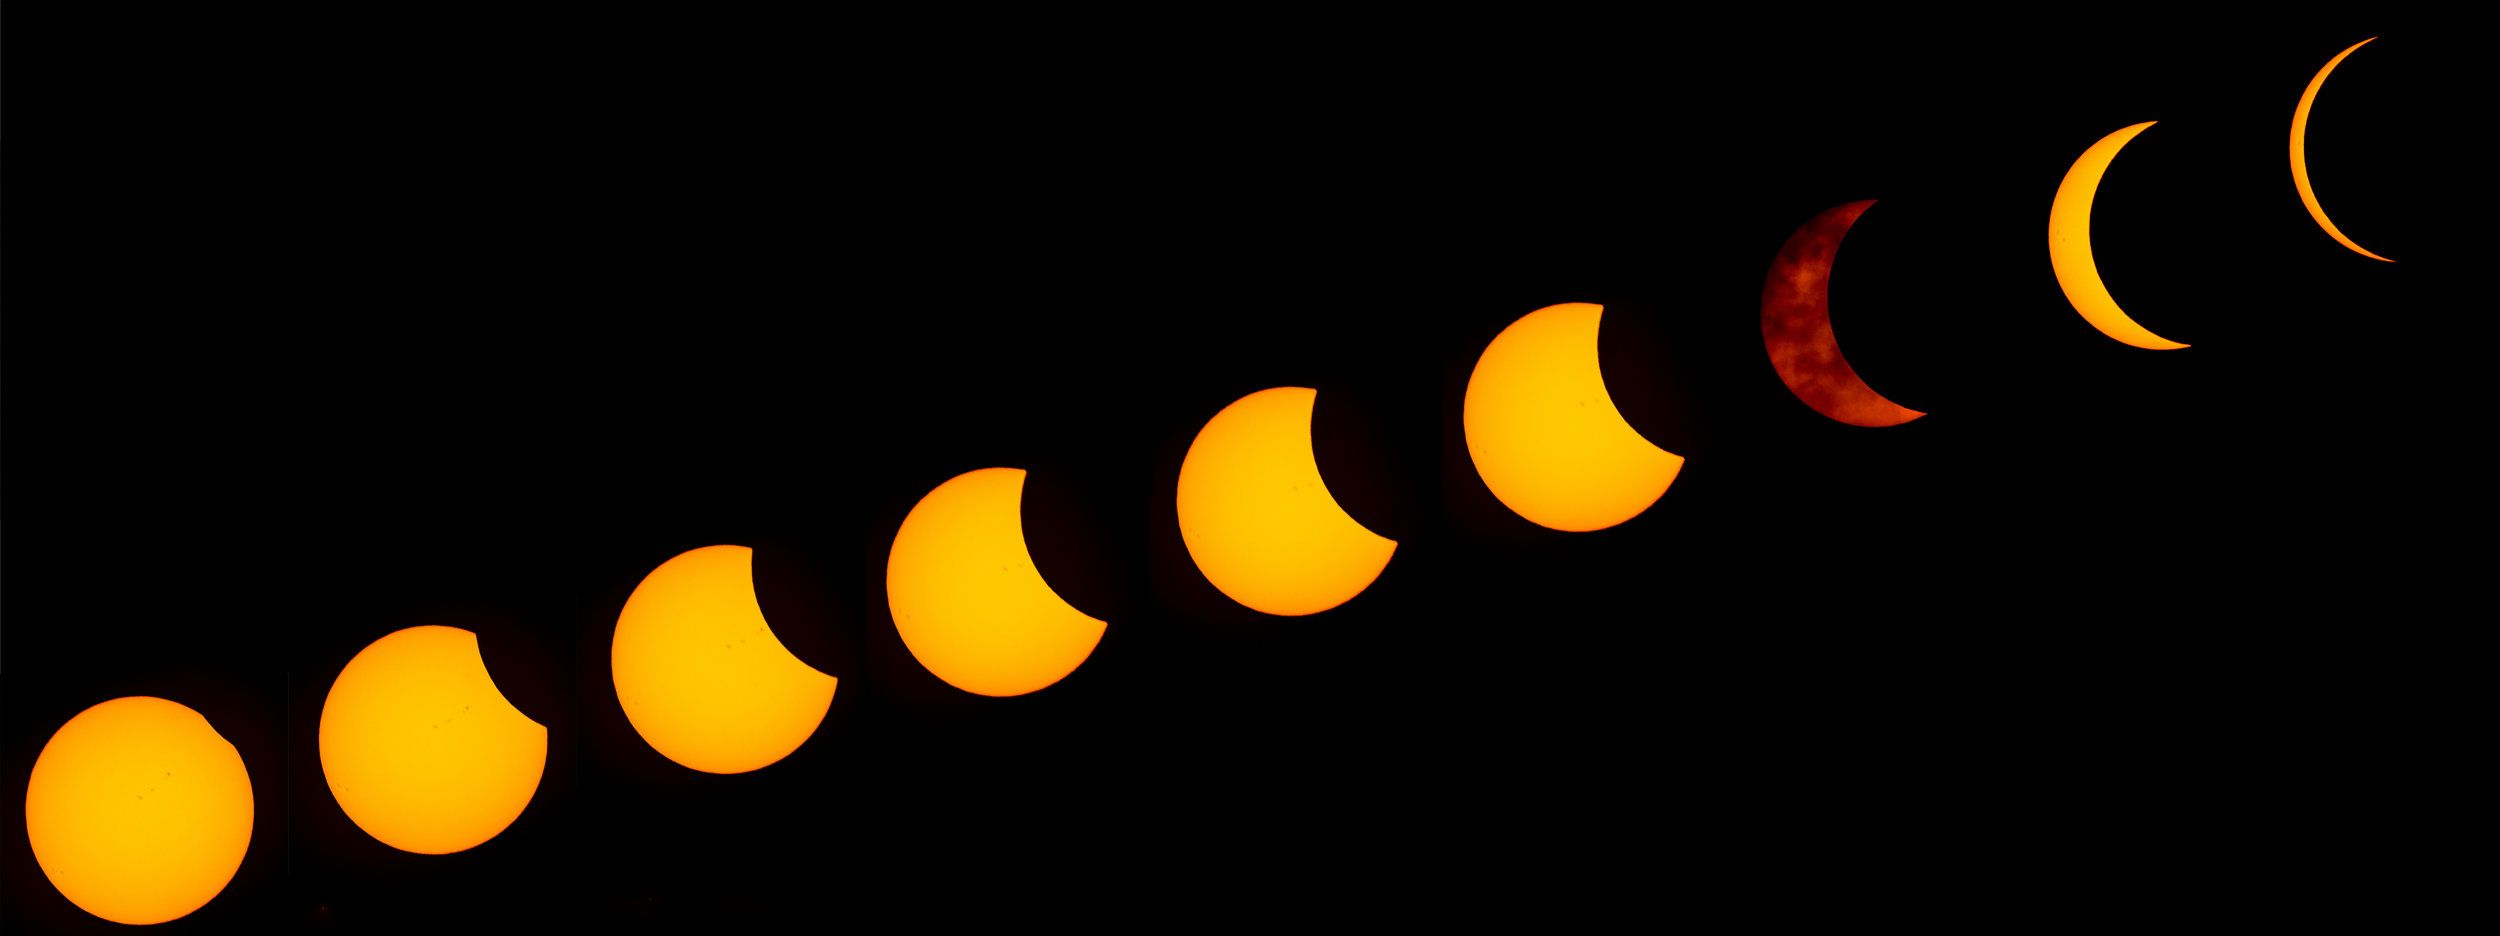 eclipse Partial Phases.jpg